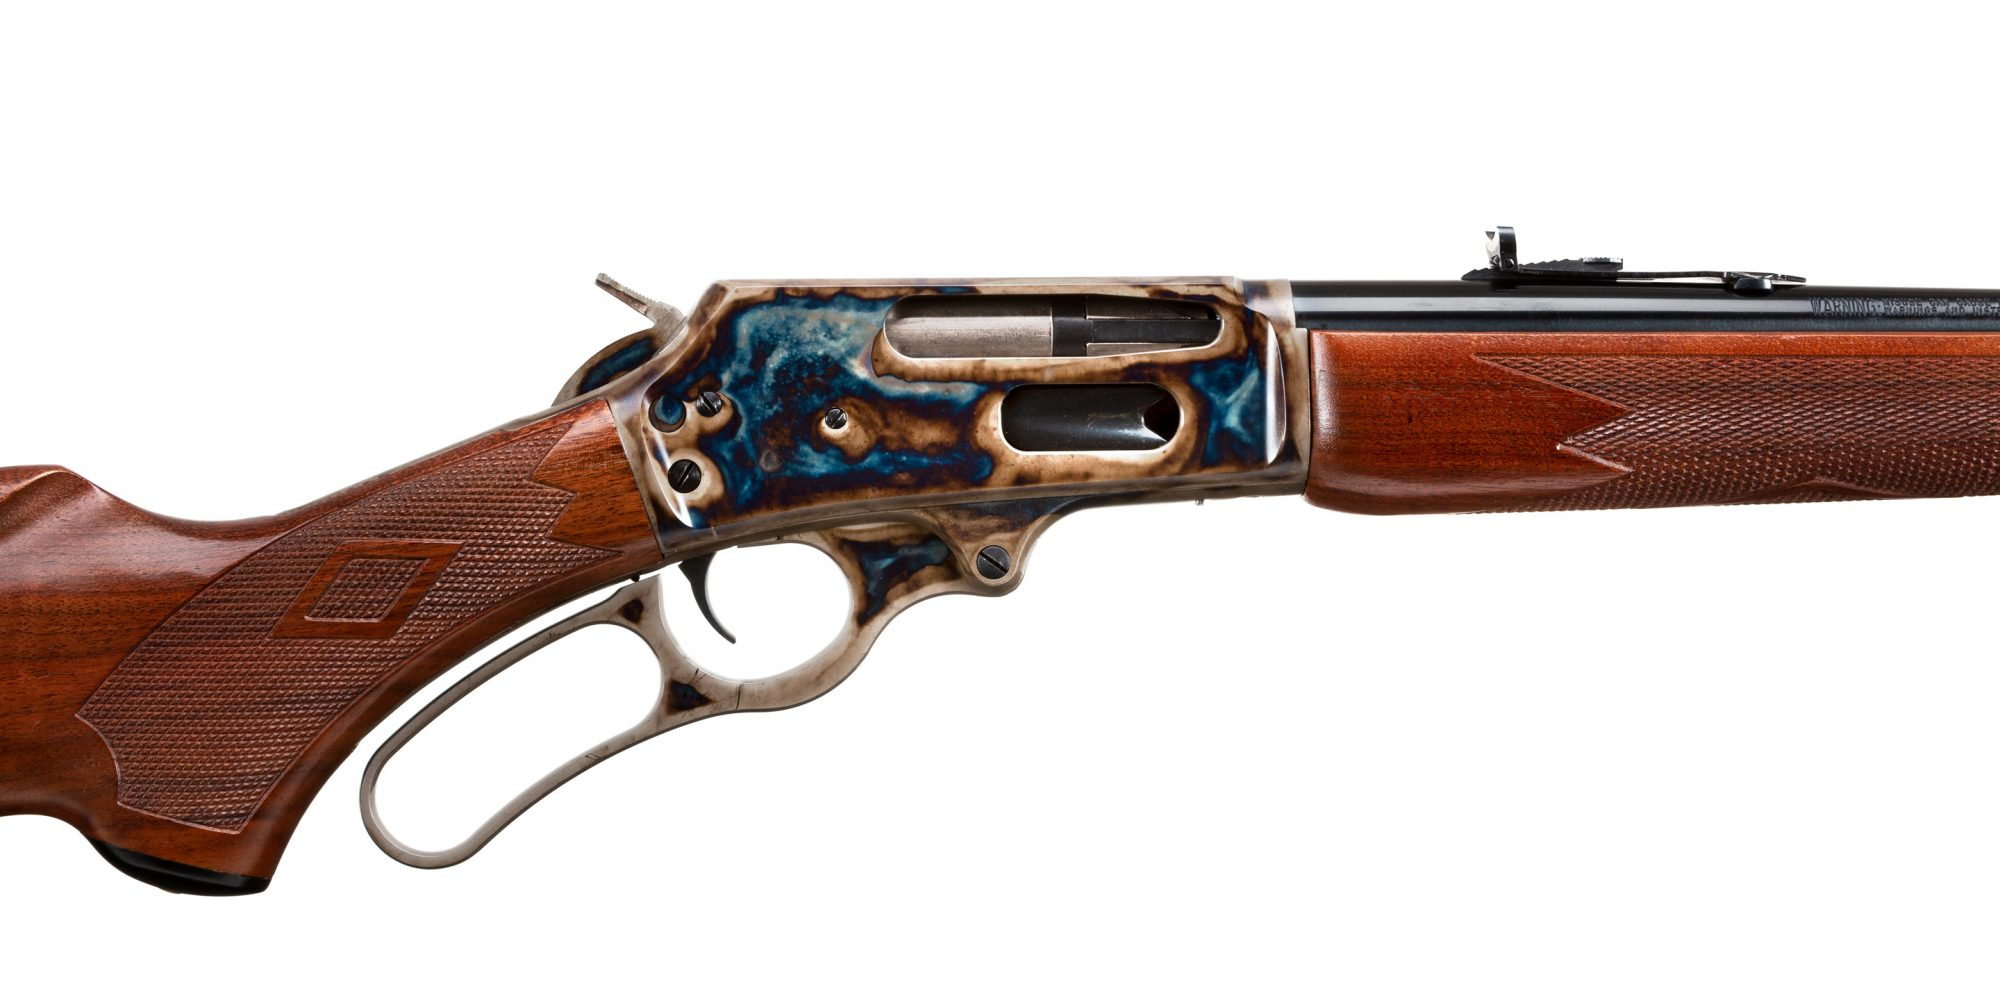 JM Stamped Marlin 336C with Turnbull Restoration Color Case Hardening